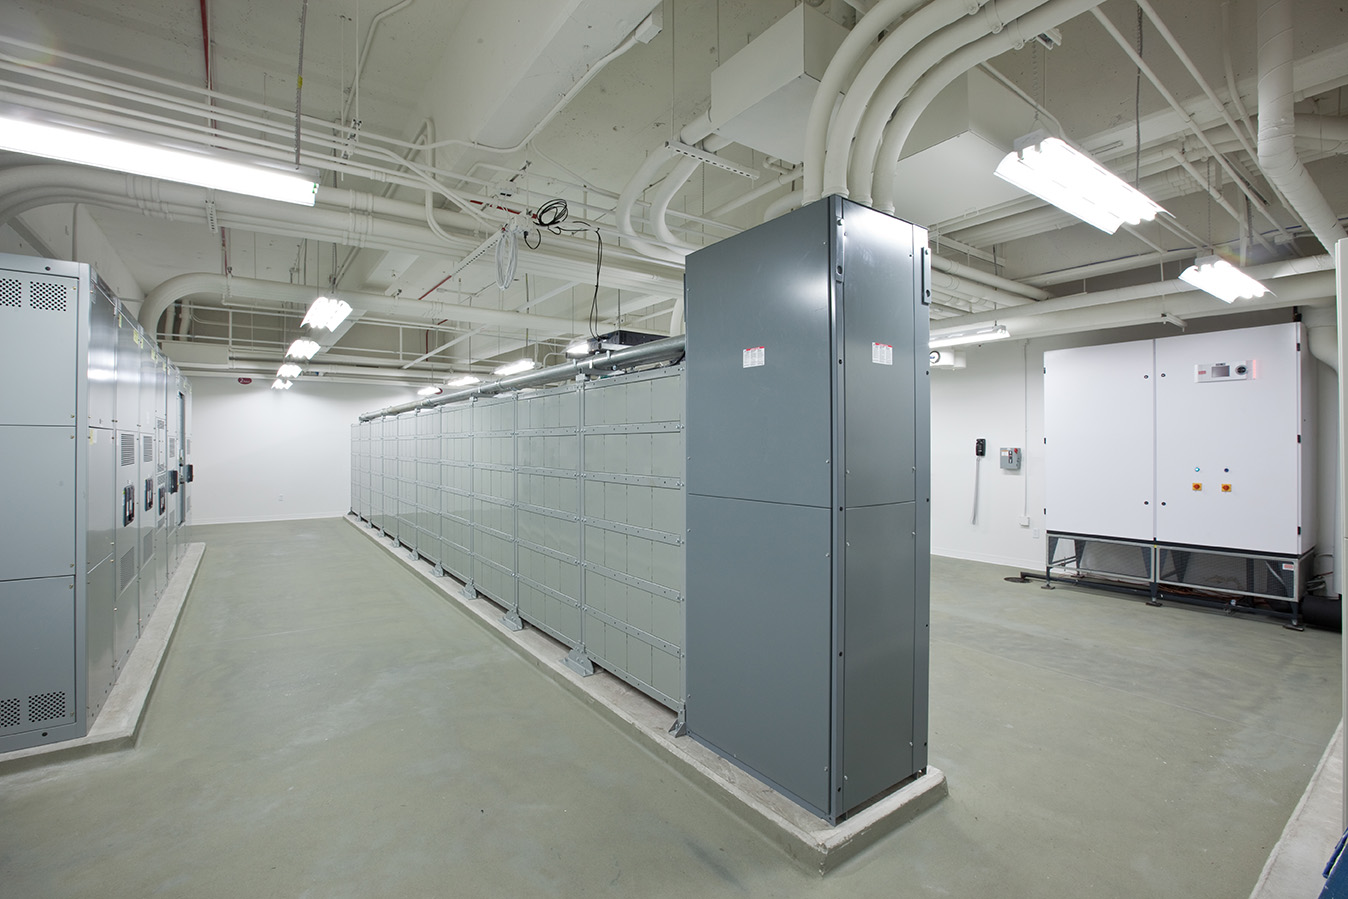 Timberlake Construction project - Enterprise Data Center at OU Health Sciences Center